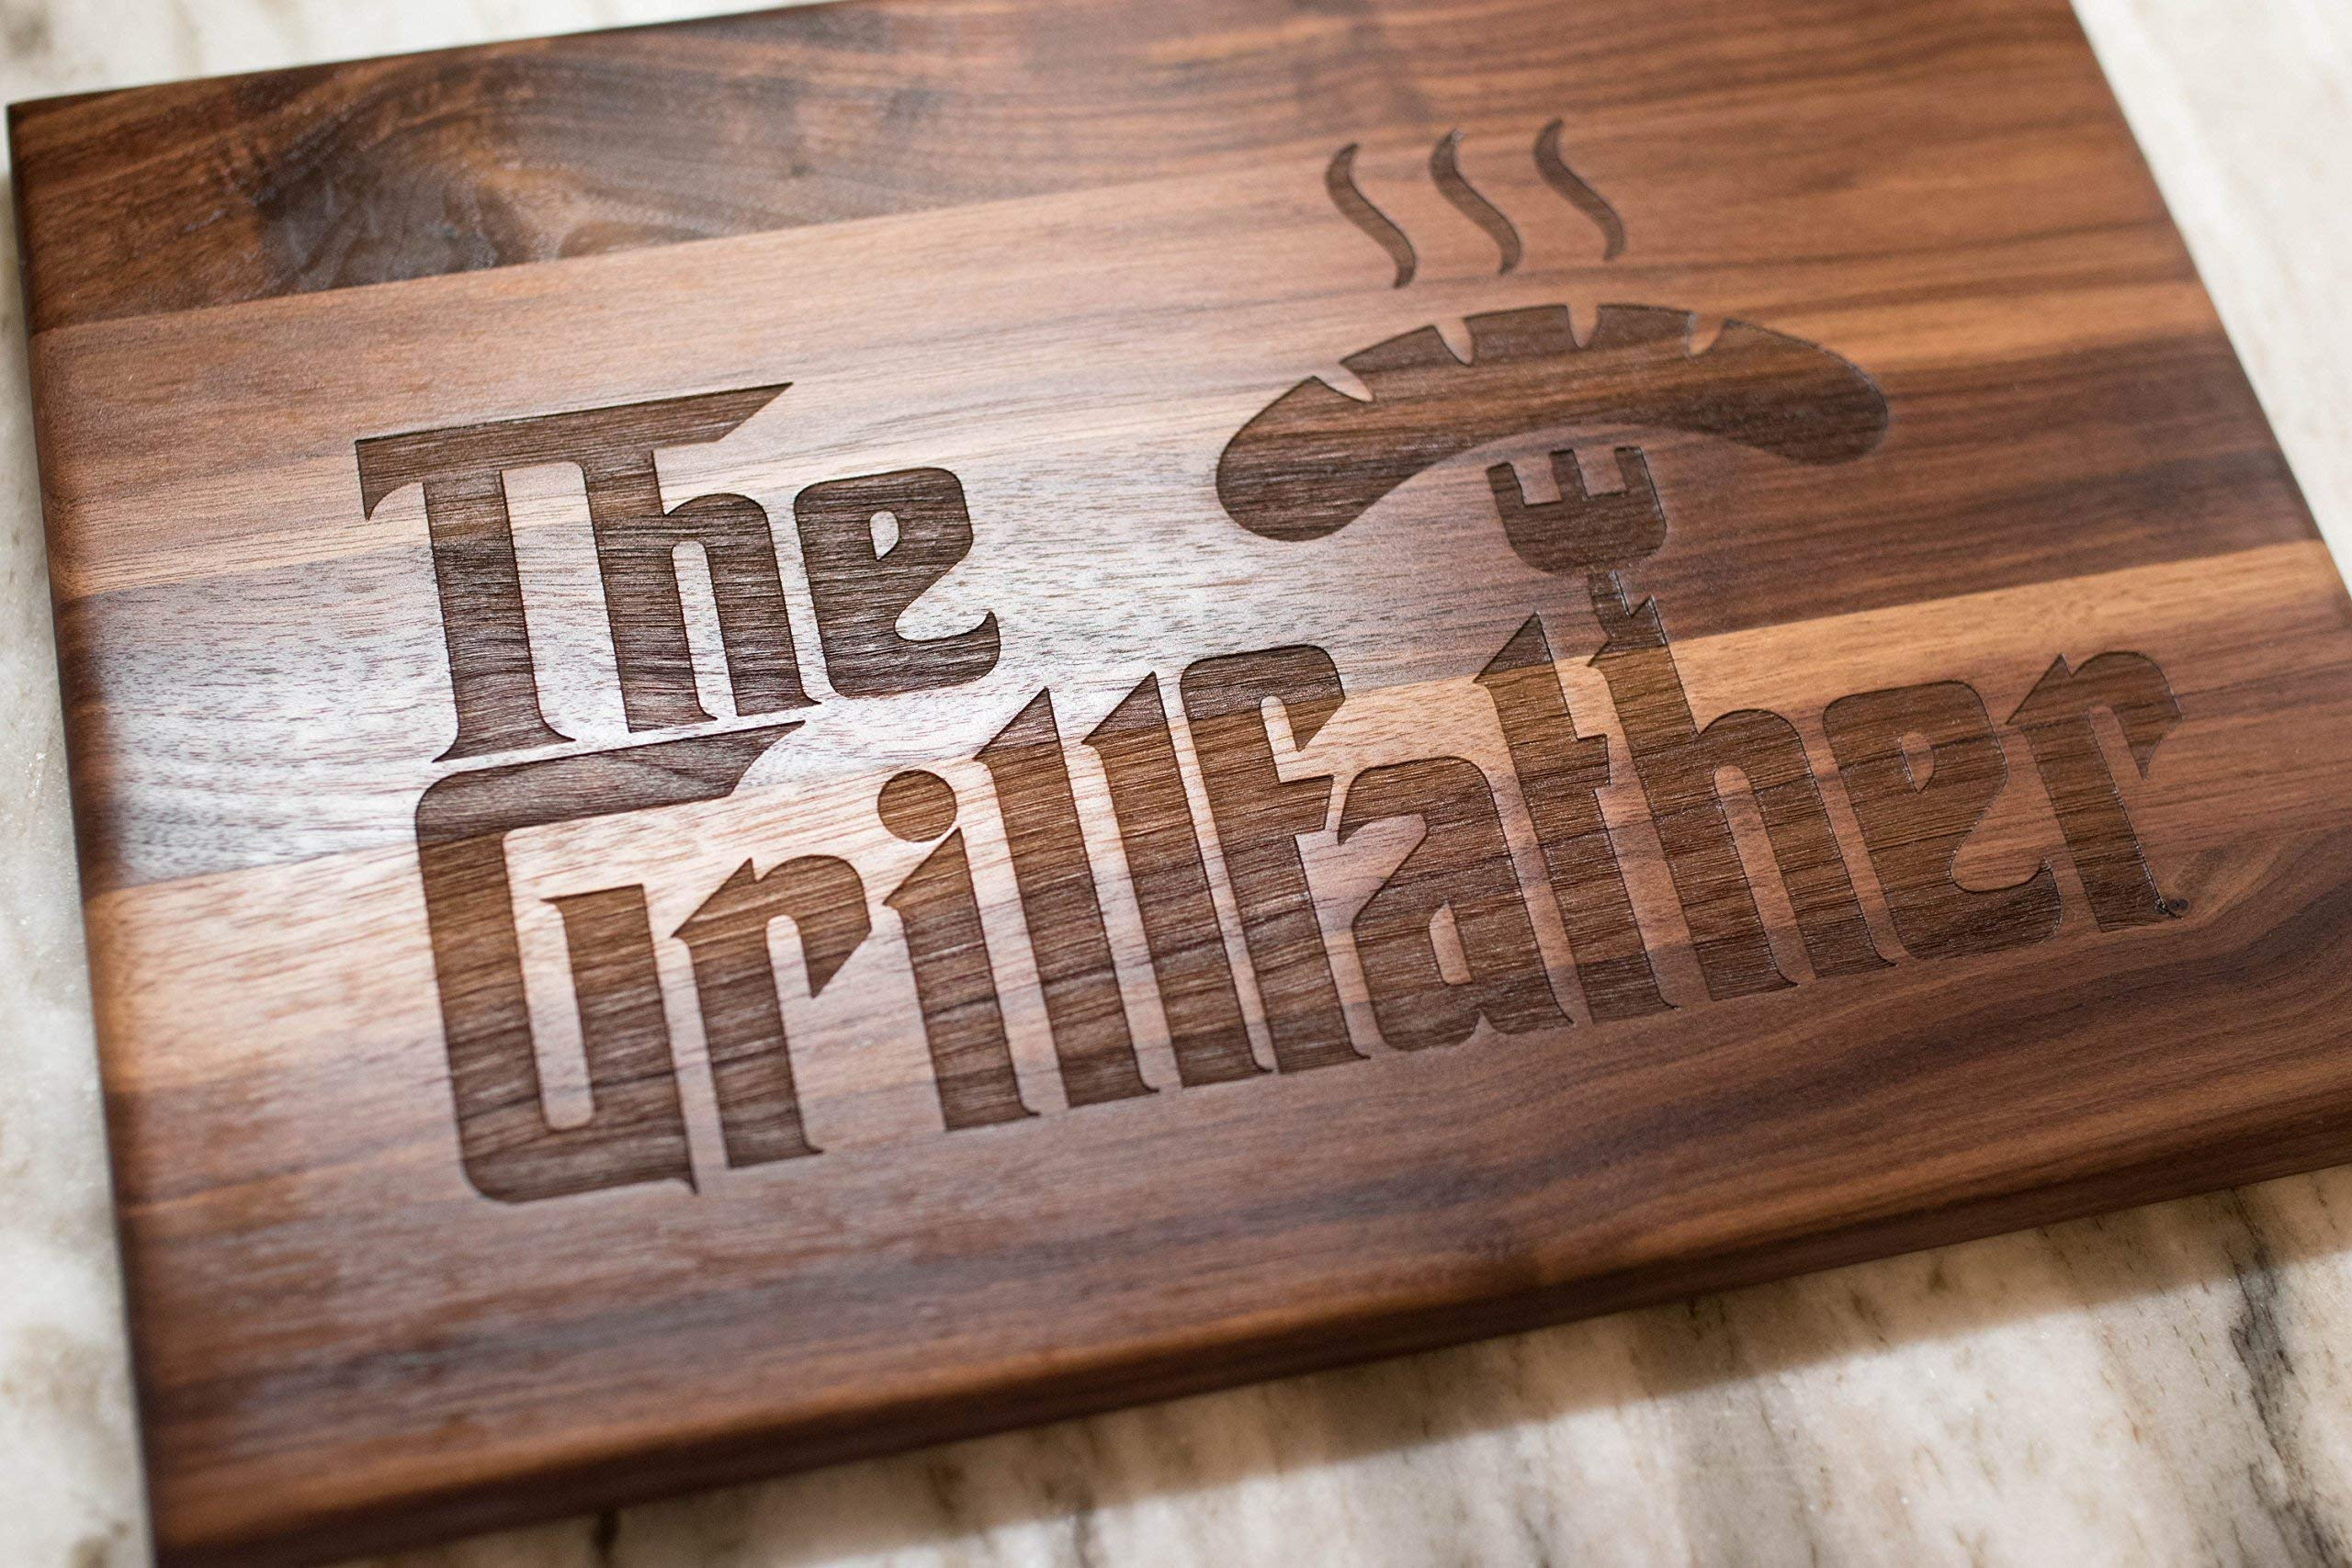 Fathers Day Gift for Dad - The Grillfather Cutting Board is a perfect gift for Dad, Stepfather gift, and grandfather gift. by NakedWoodWorks (Image #1)